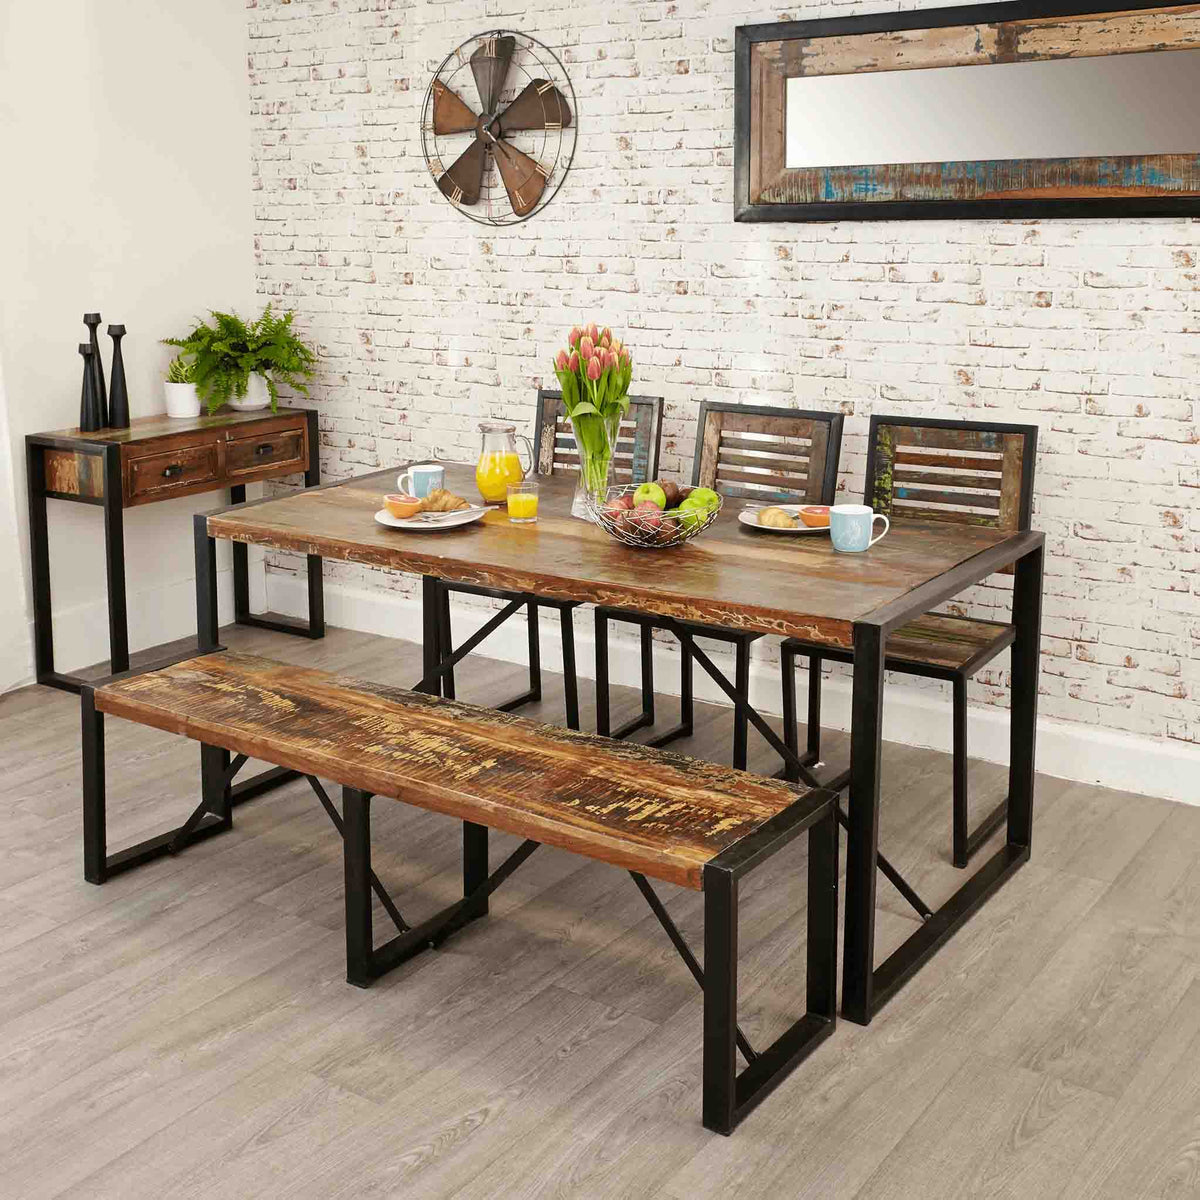 Urban Chic Large Dining Bench - Lifestyle in situ